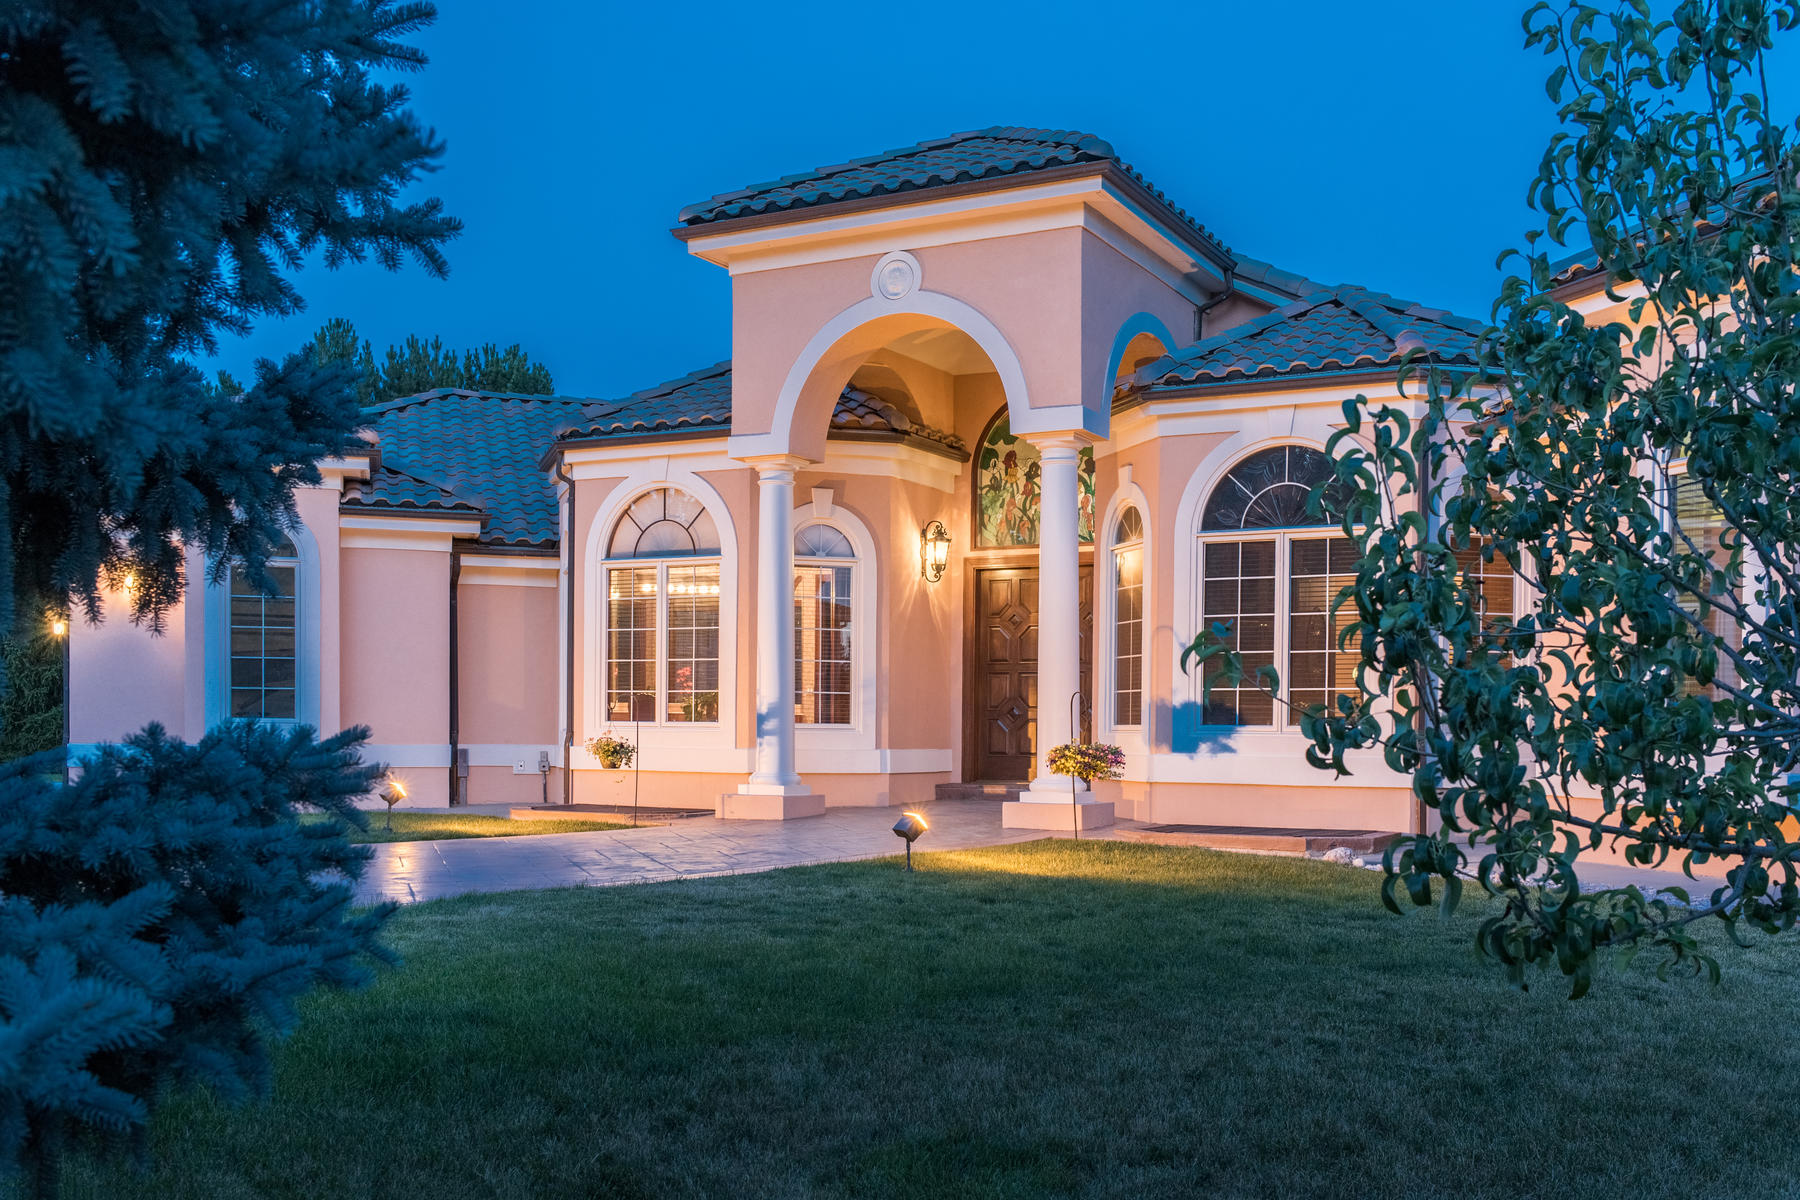 Single Family Home for Active at This exquisite Mediterranean style villa sits on over an acre 6180 E Quincy Ave Cherry Hills Village, Colorado 80111 United States